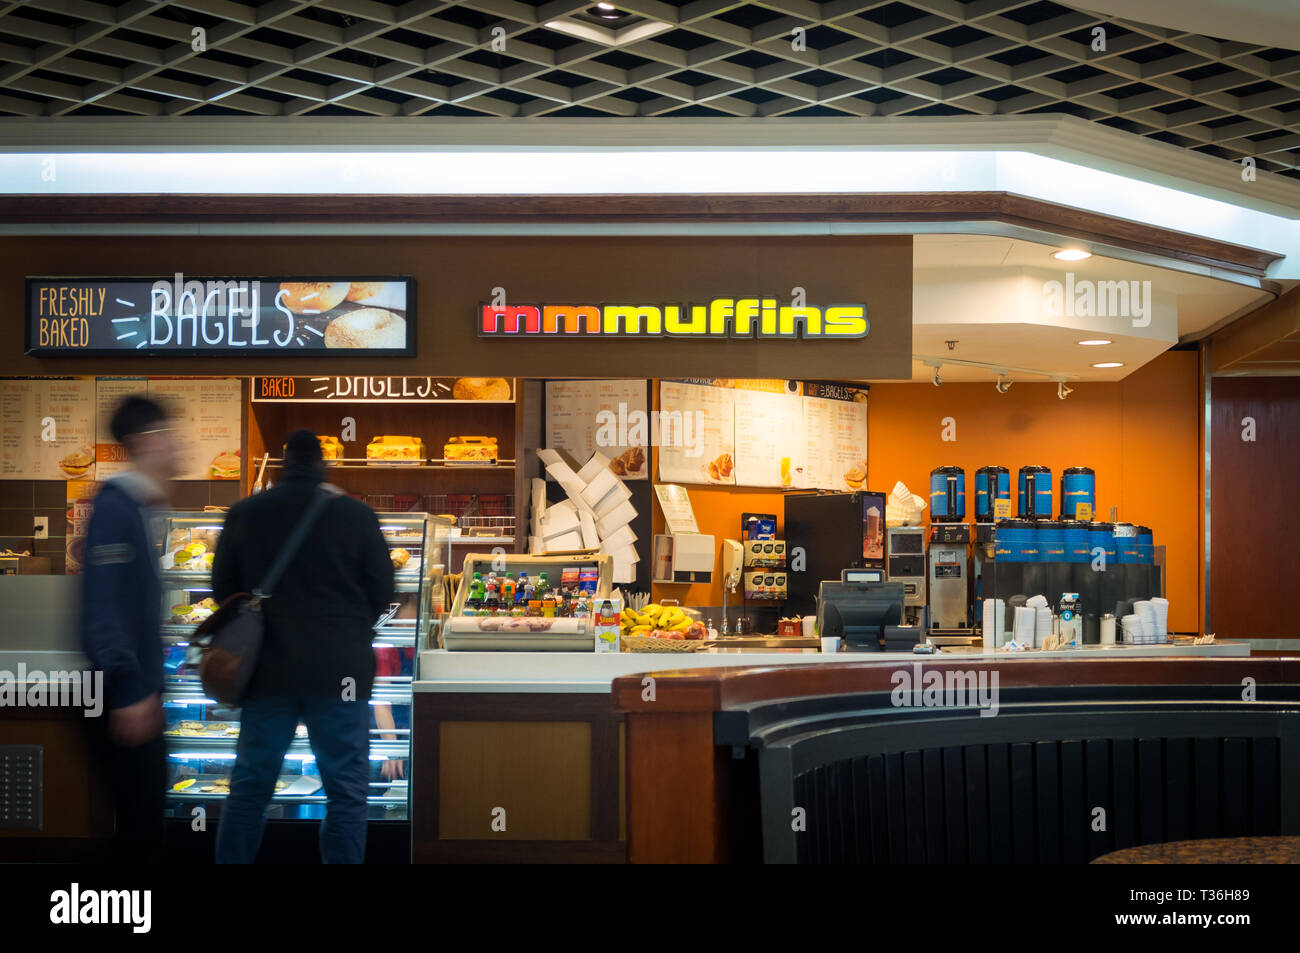 A Mmmuffins (also known as Marvellous Mmmuffins or Marvellous Muffins) retail location in the food court of Scotia Plaza in Toronto, Ontario, Canada. - Stock Image